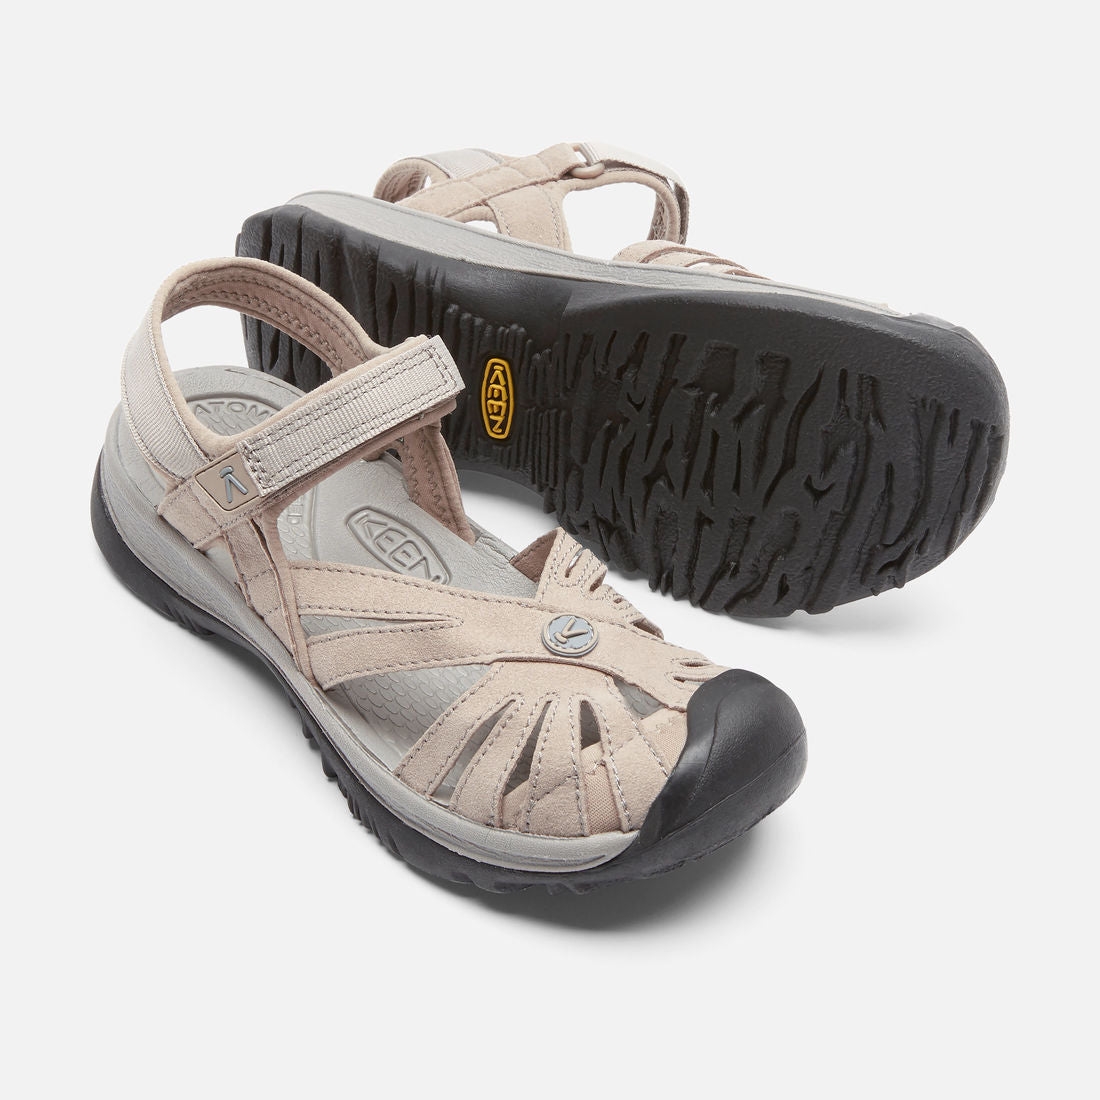 dfbfe3b4687 Women s Keen Rose Sandal - Neutral Gray – Gazelle Sports